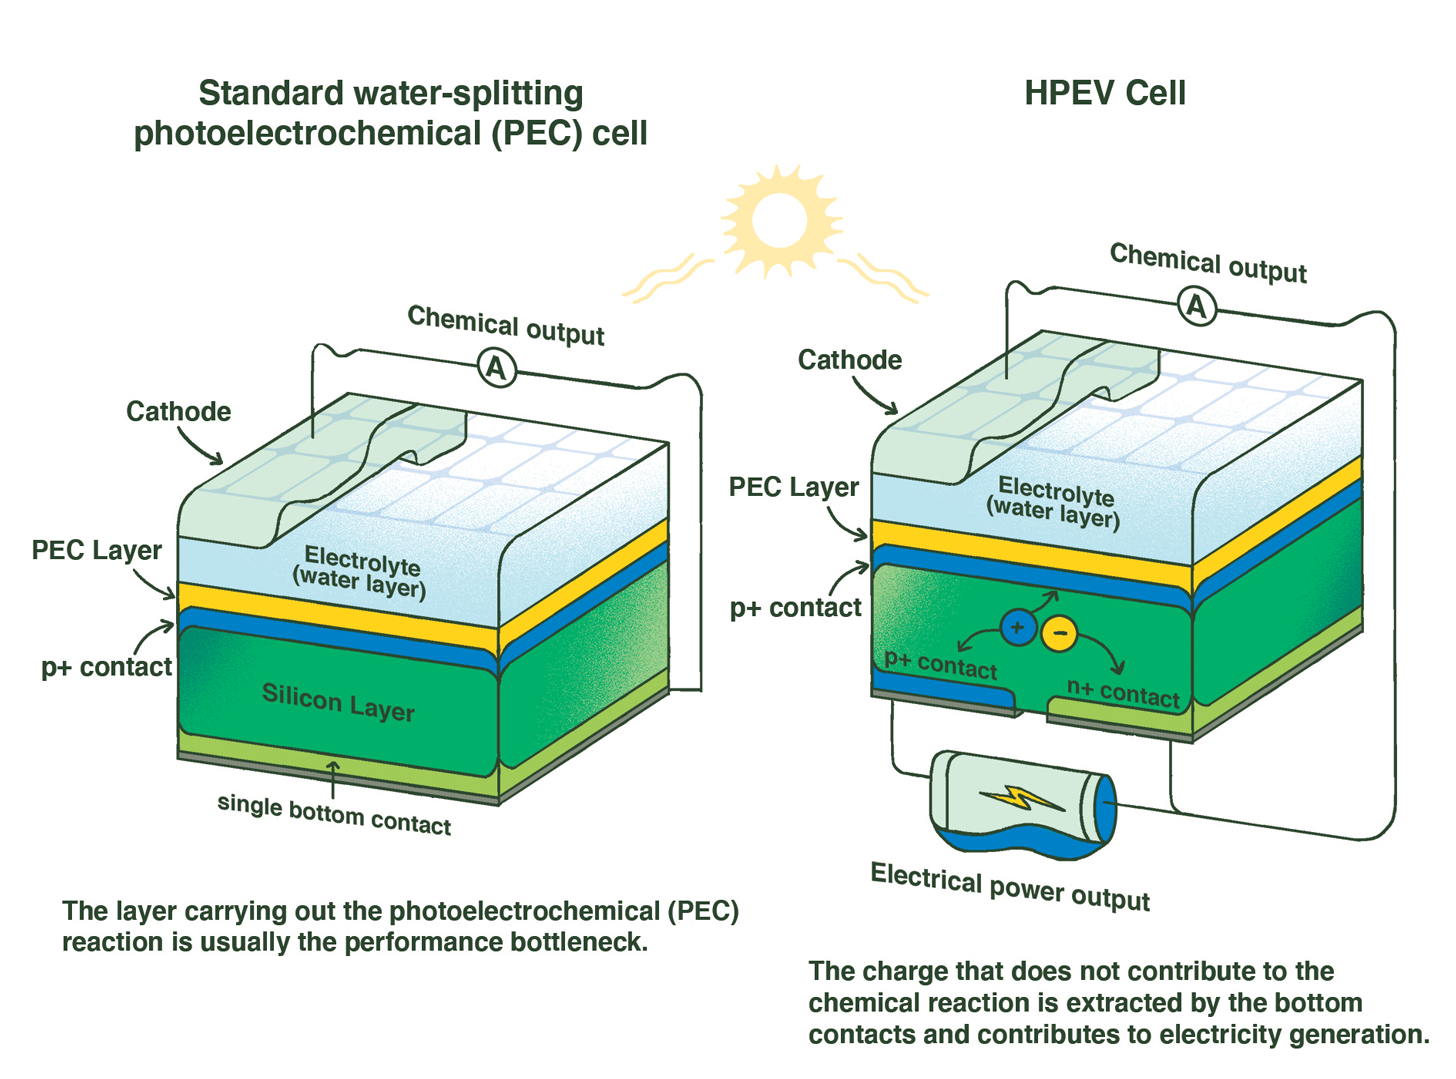 Comparison of PEC cell and HPEV cell